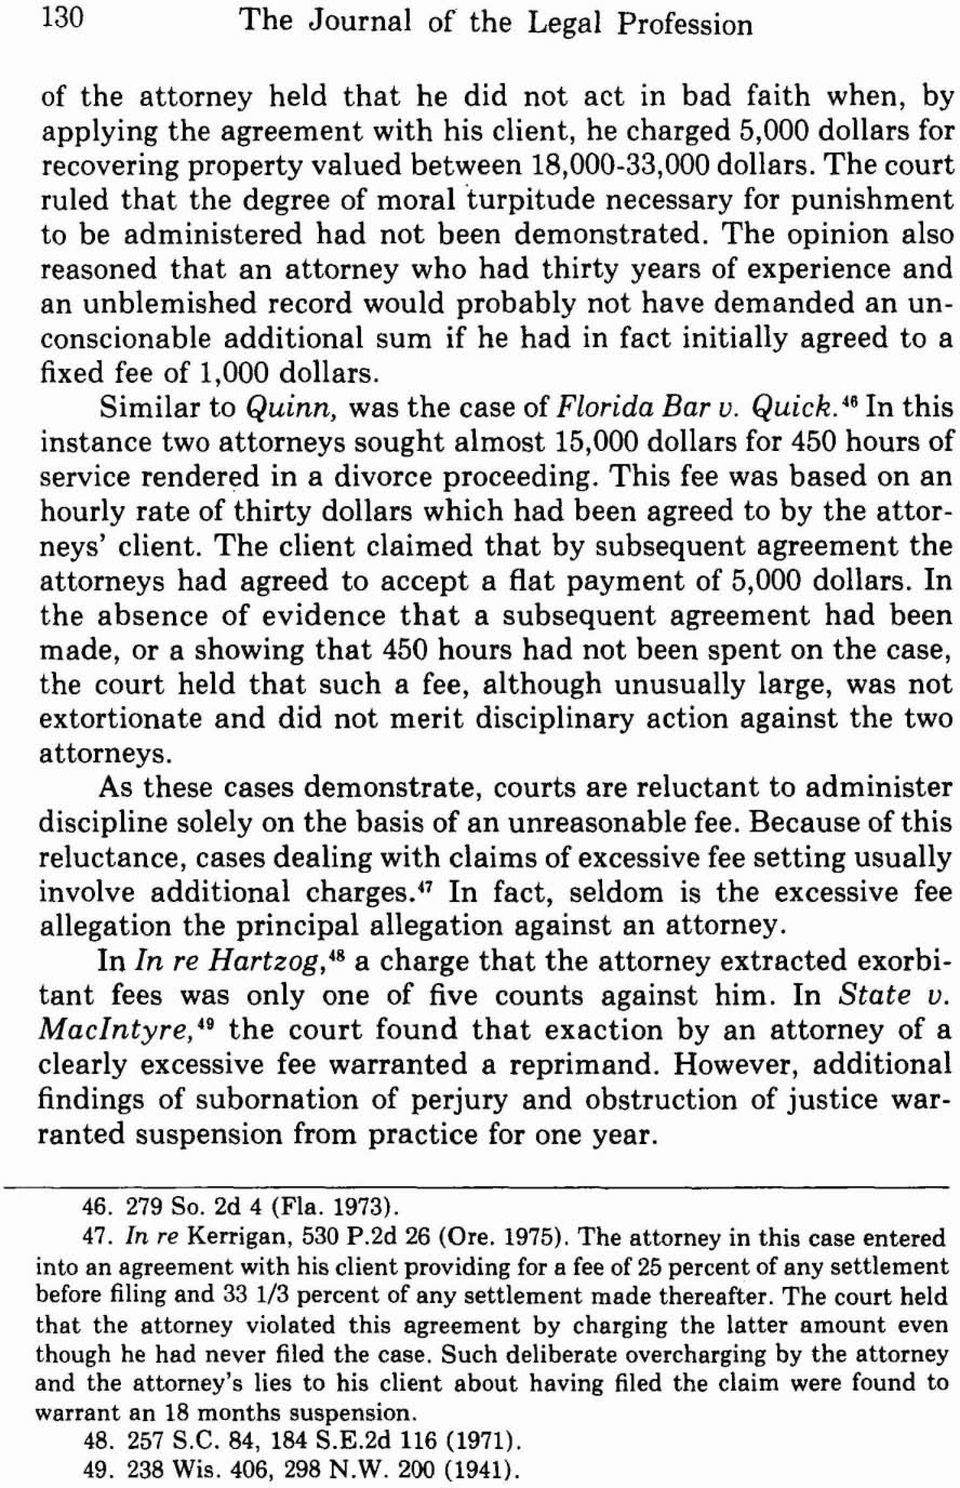 The opinion also reasoned that an attorney who had thirty years of experience and an unblemished record would probably not have demanded an unconscionable additional sum if he had in fact initially